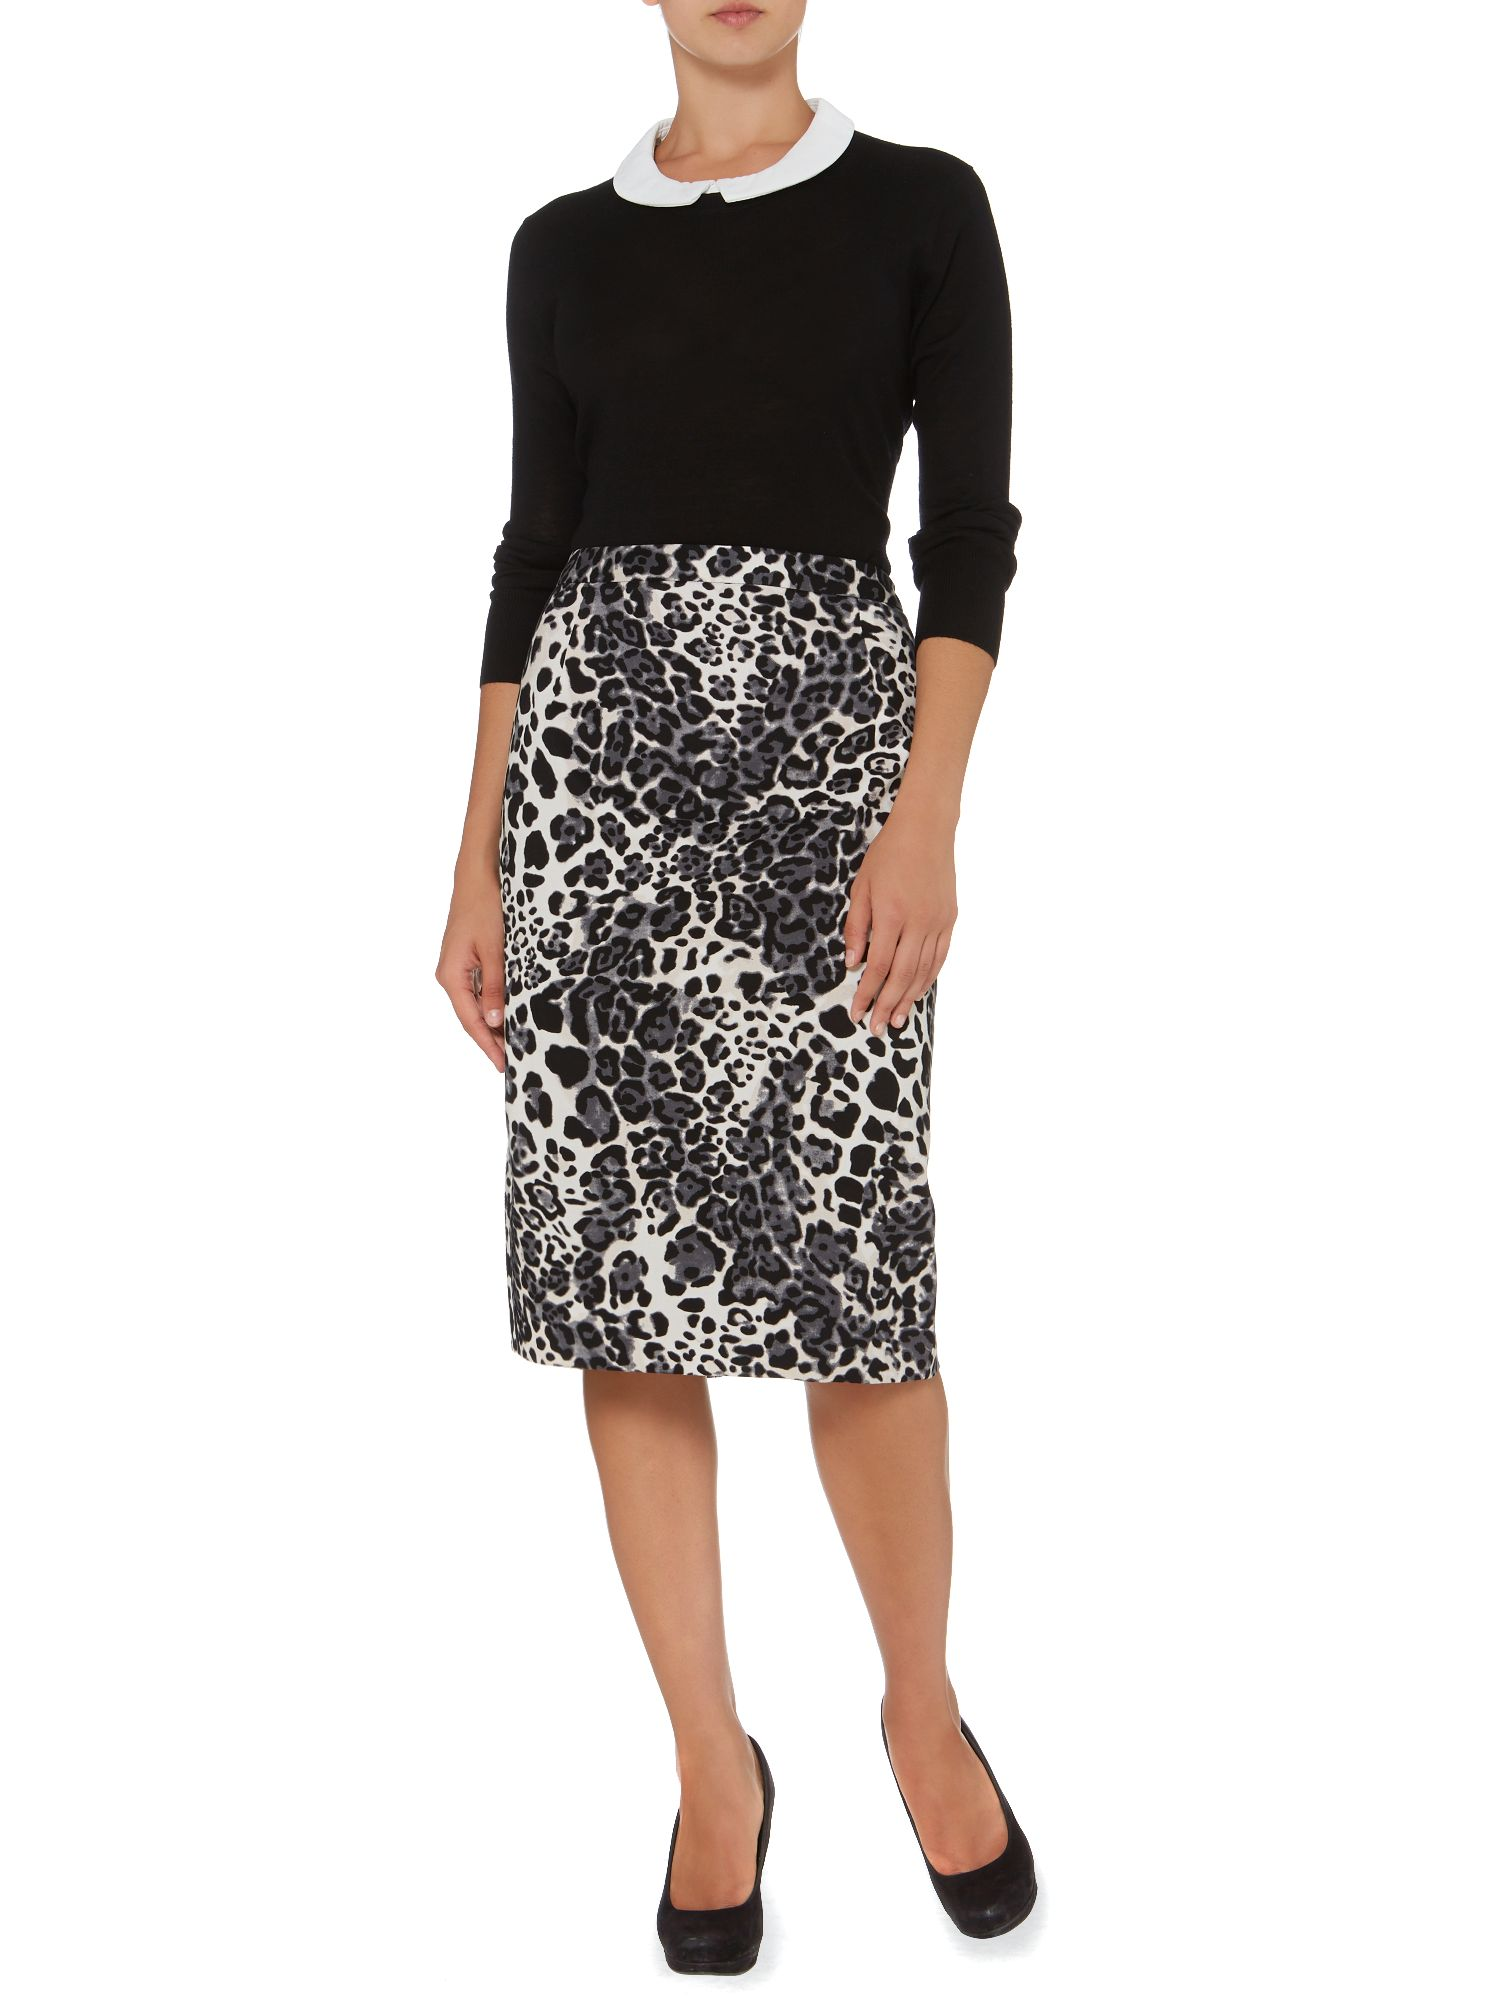 Animal printed skirt